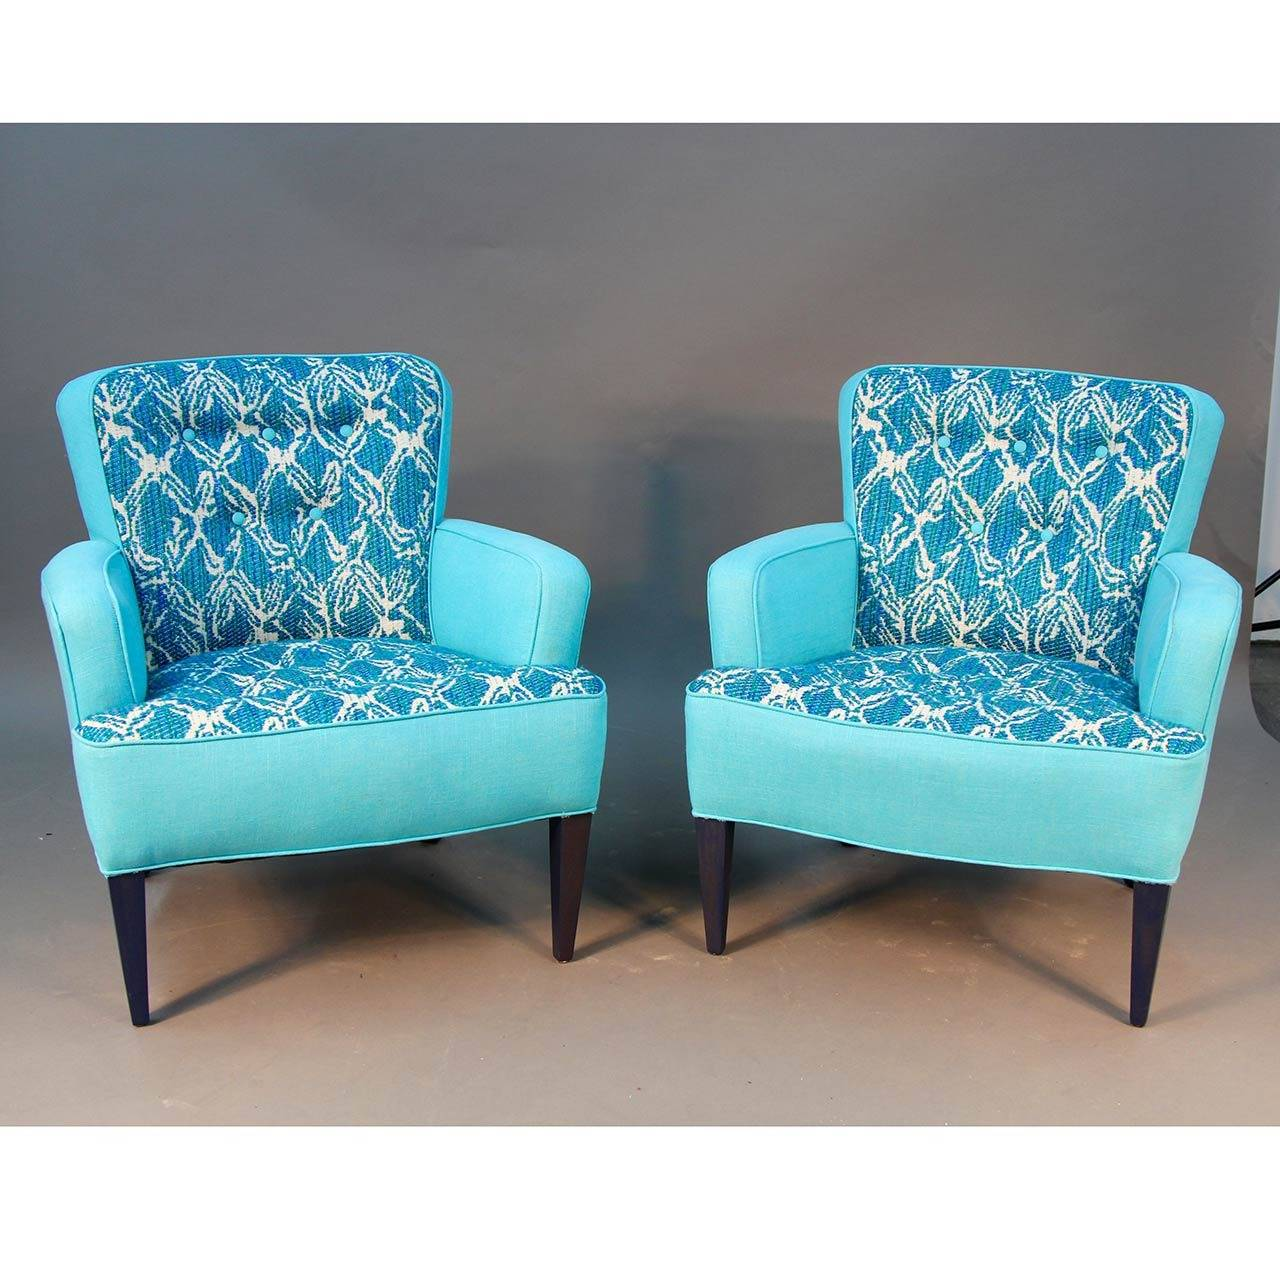 Turquoise Leather Chair Pair Of Turquoise Sala Chairs Draper Era For Sale At 1stdibs